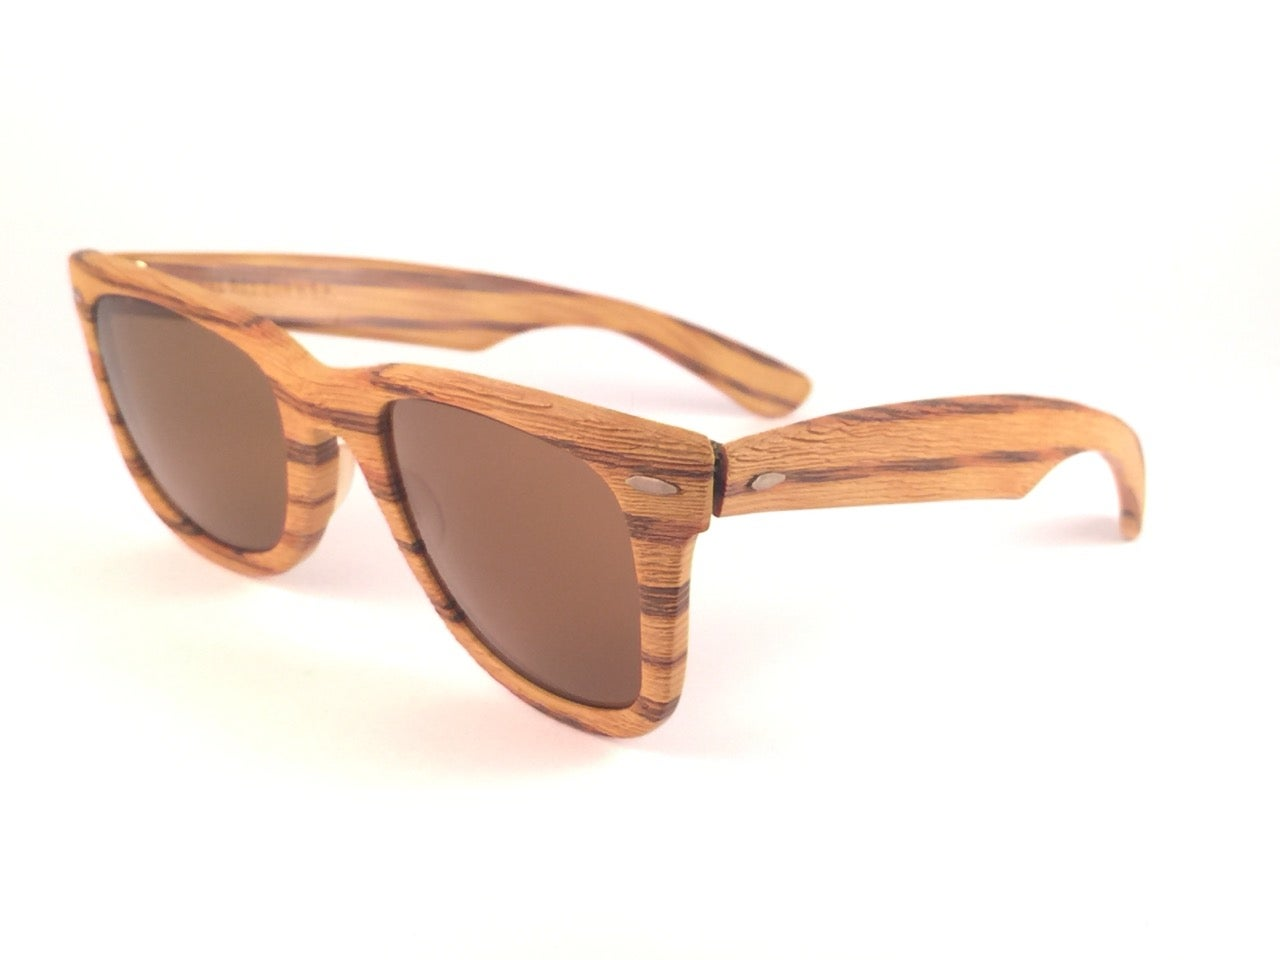 7ac80522d5e New Ray Ban The Wayfarer Woodies Teak Edition Collectors USA 80 s Sunglasses  For Sale at 1stdibs